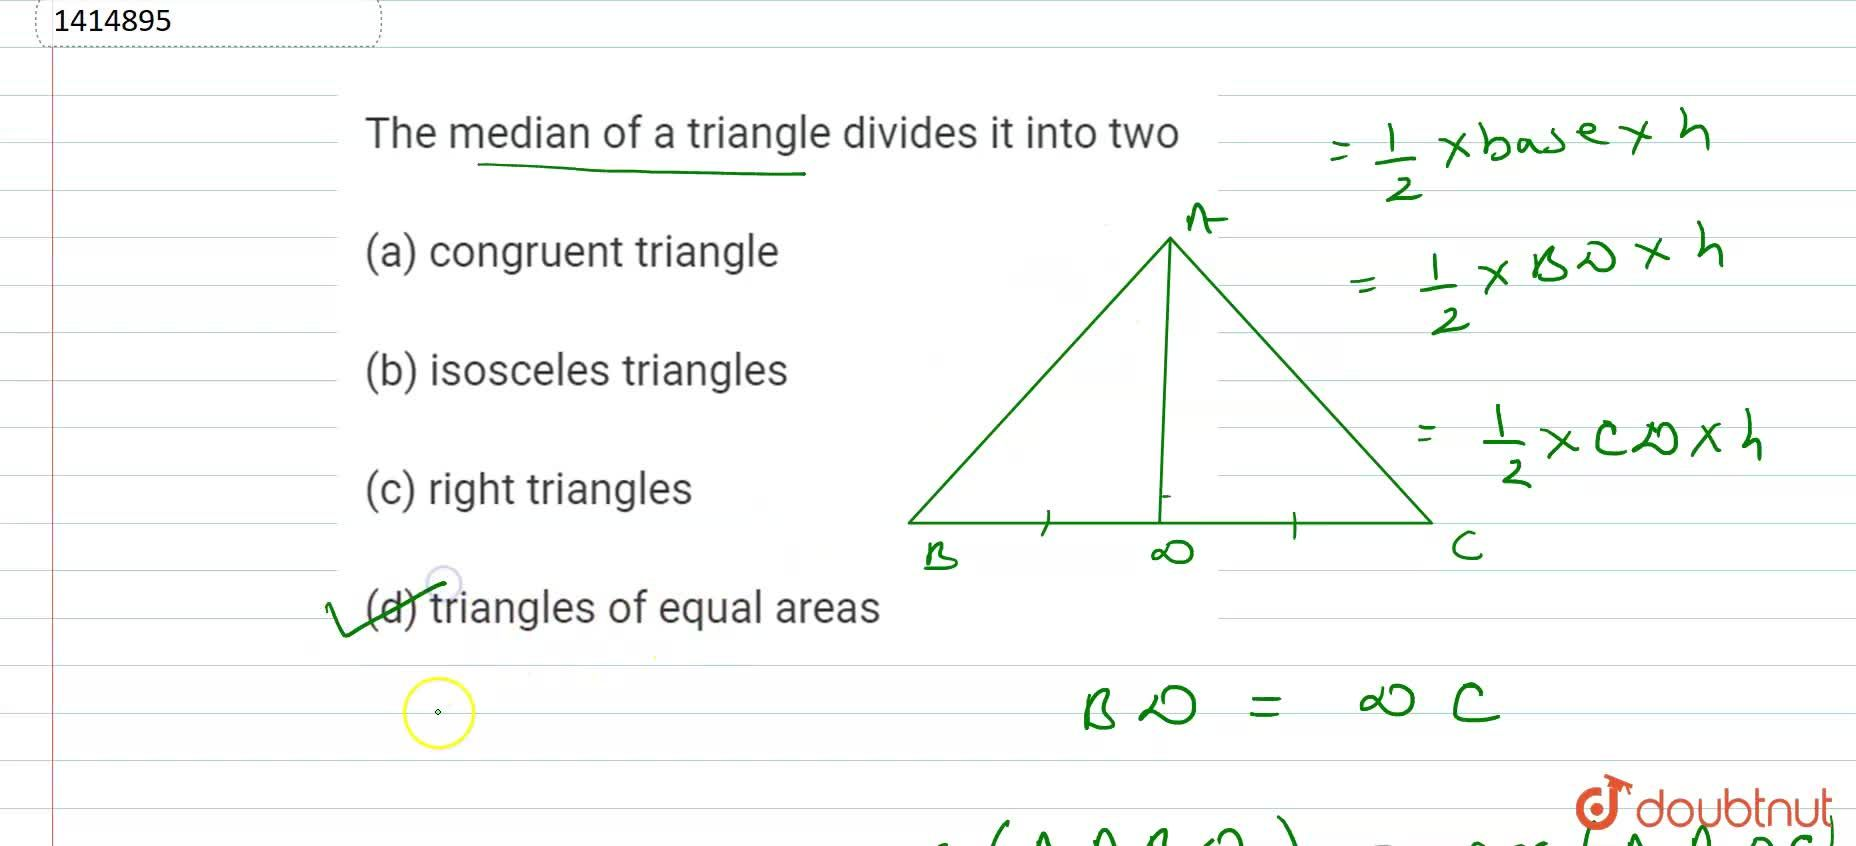 The median   of a triangle divides it into two congruent   triangle (b) isosceles triangles right   triangles (d) triangles of equal areas